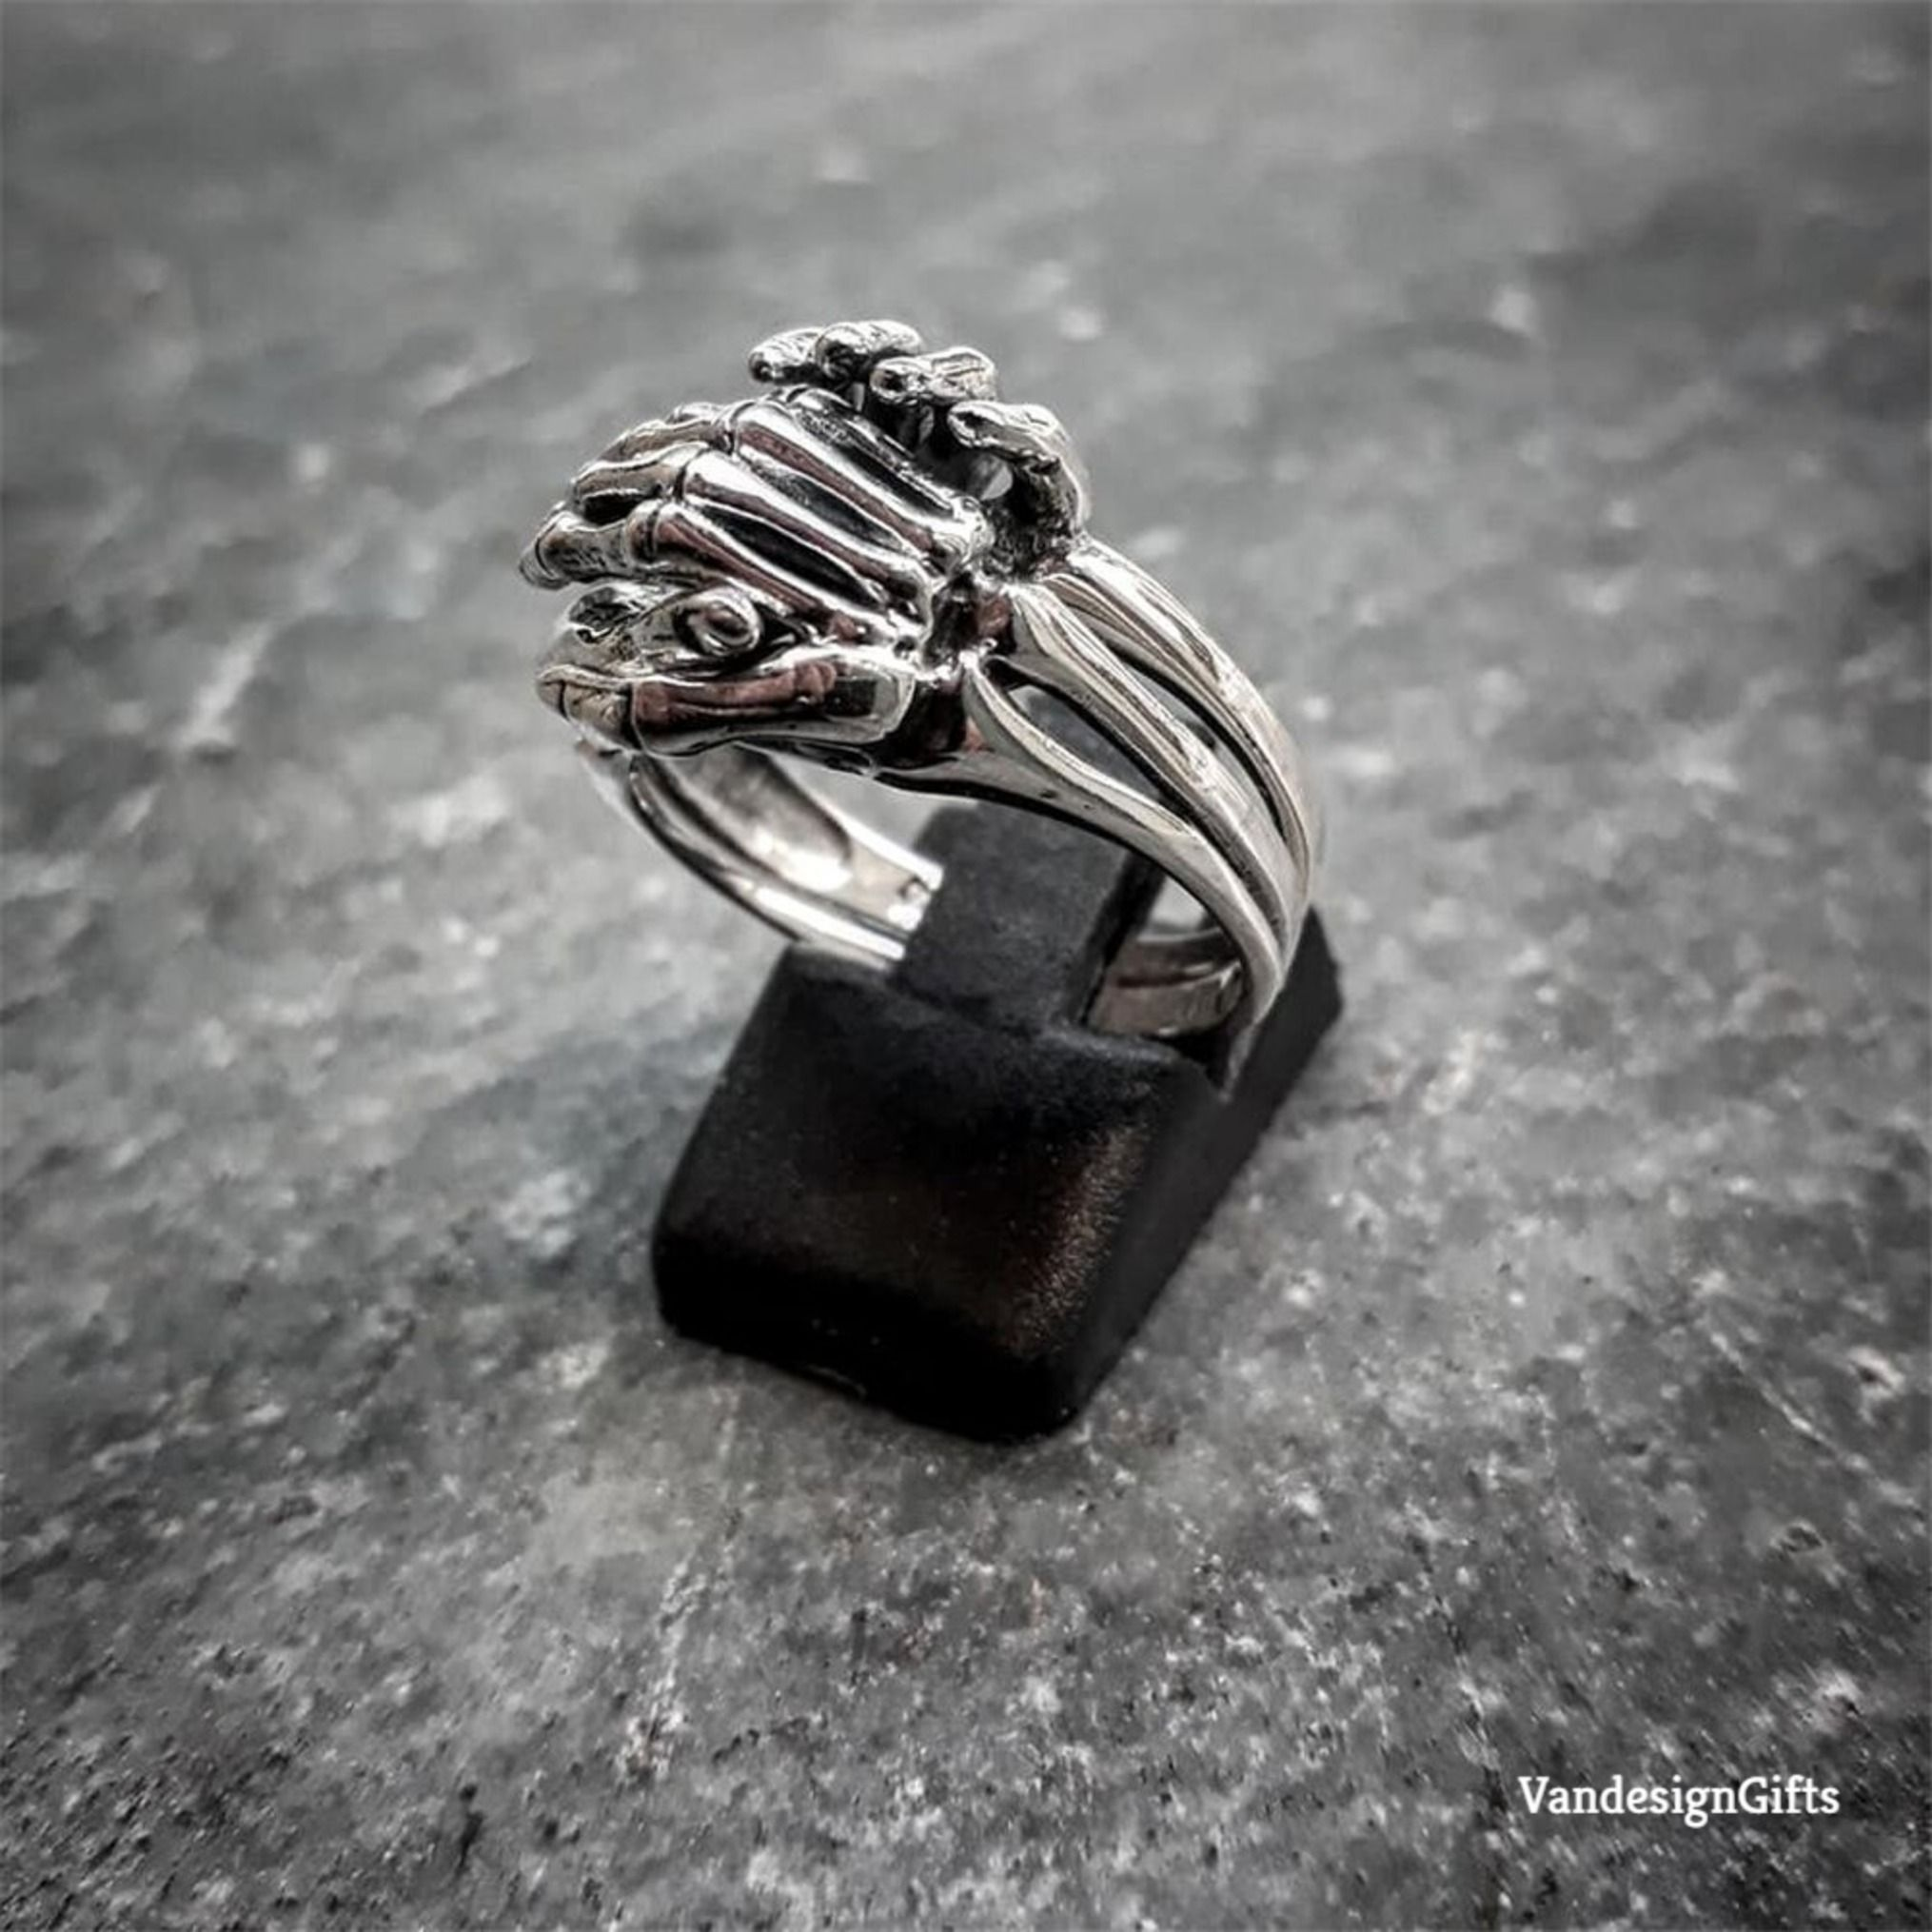 Unique Friendship & Love Couple Puzzle Ring Unisex Skeleton Stainless Steel Rings Jewelry